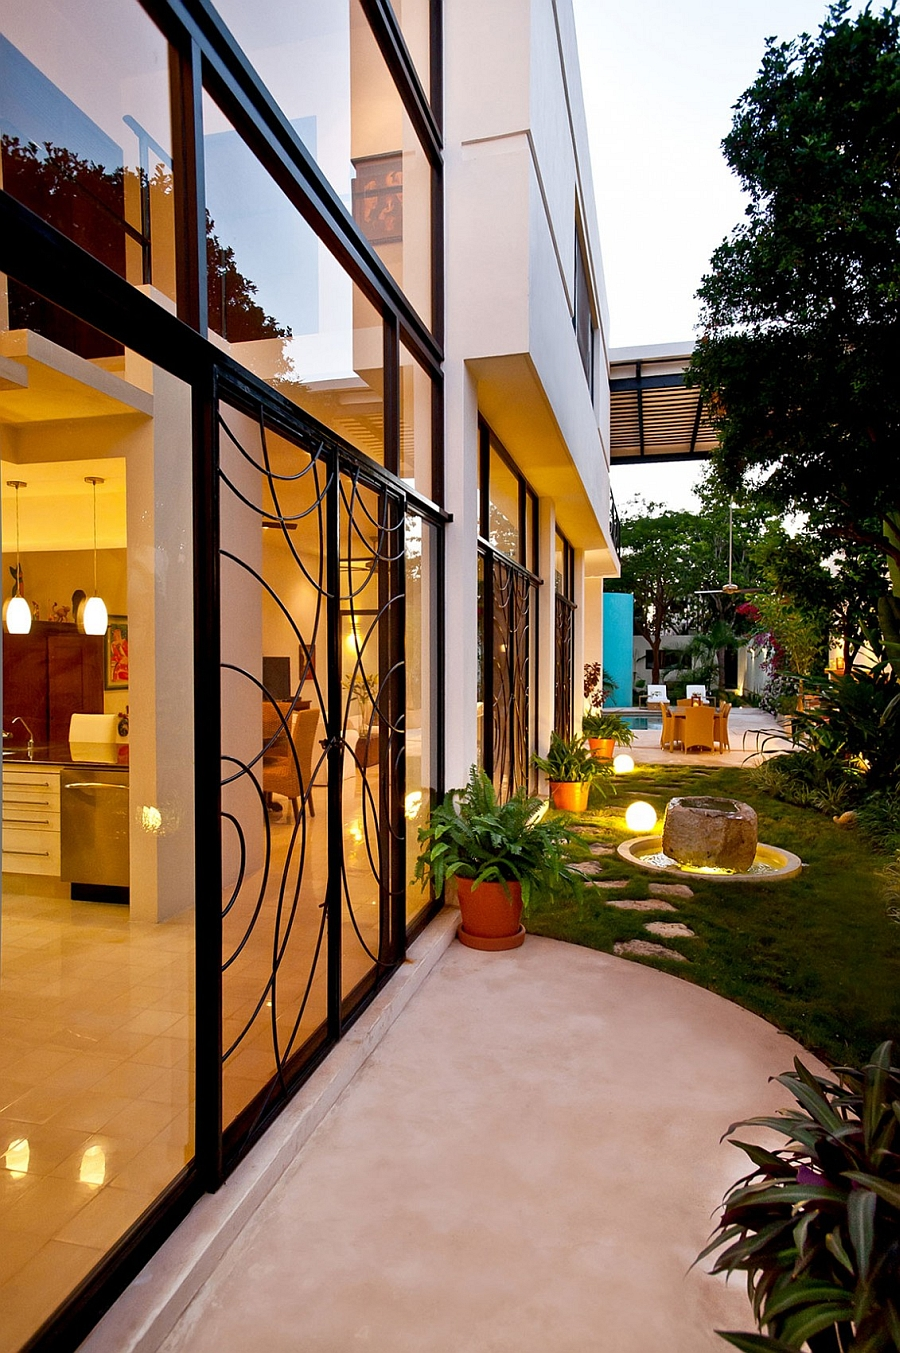 Outdoor lighting and intricate design on the sliding doors shape the beautiful landscape